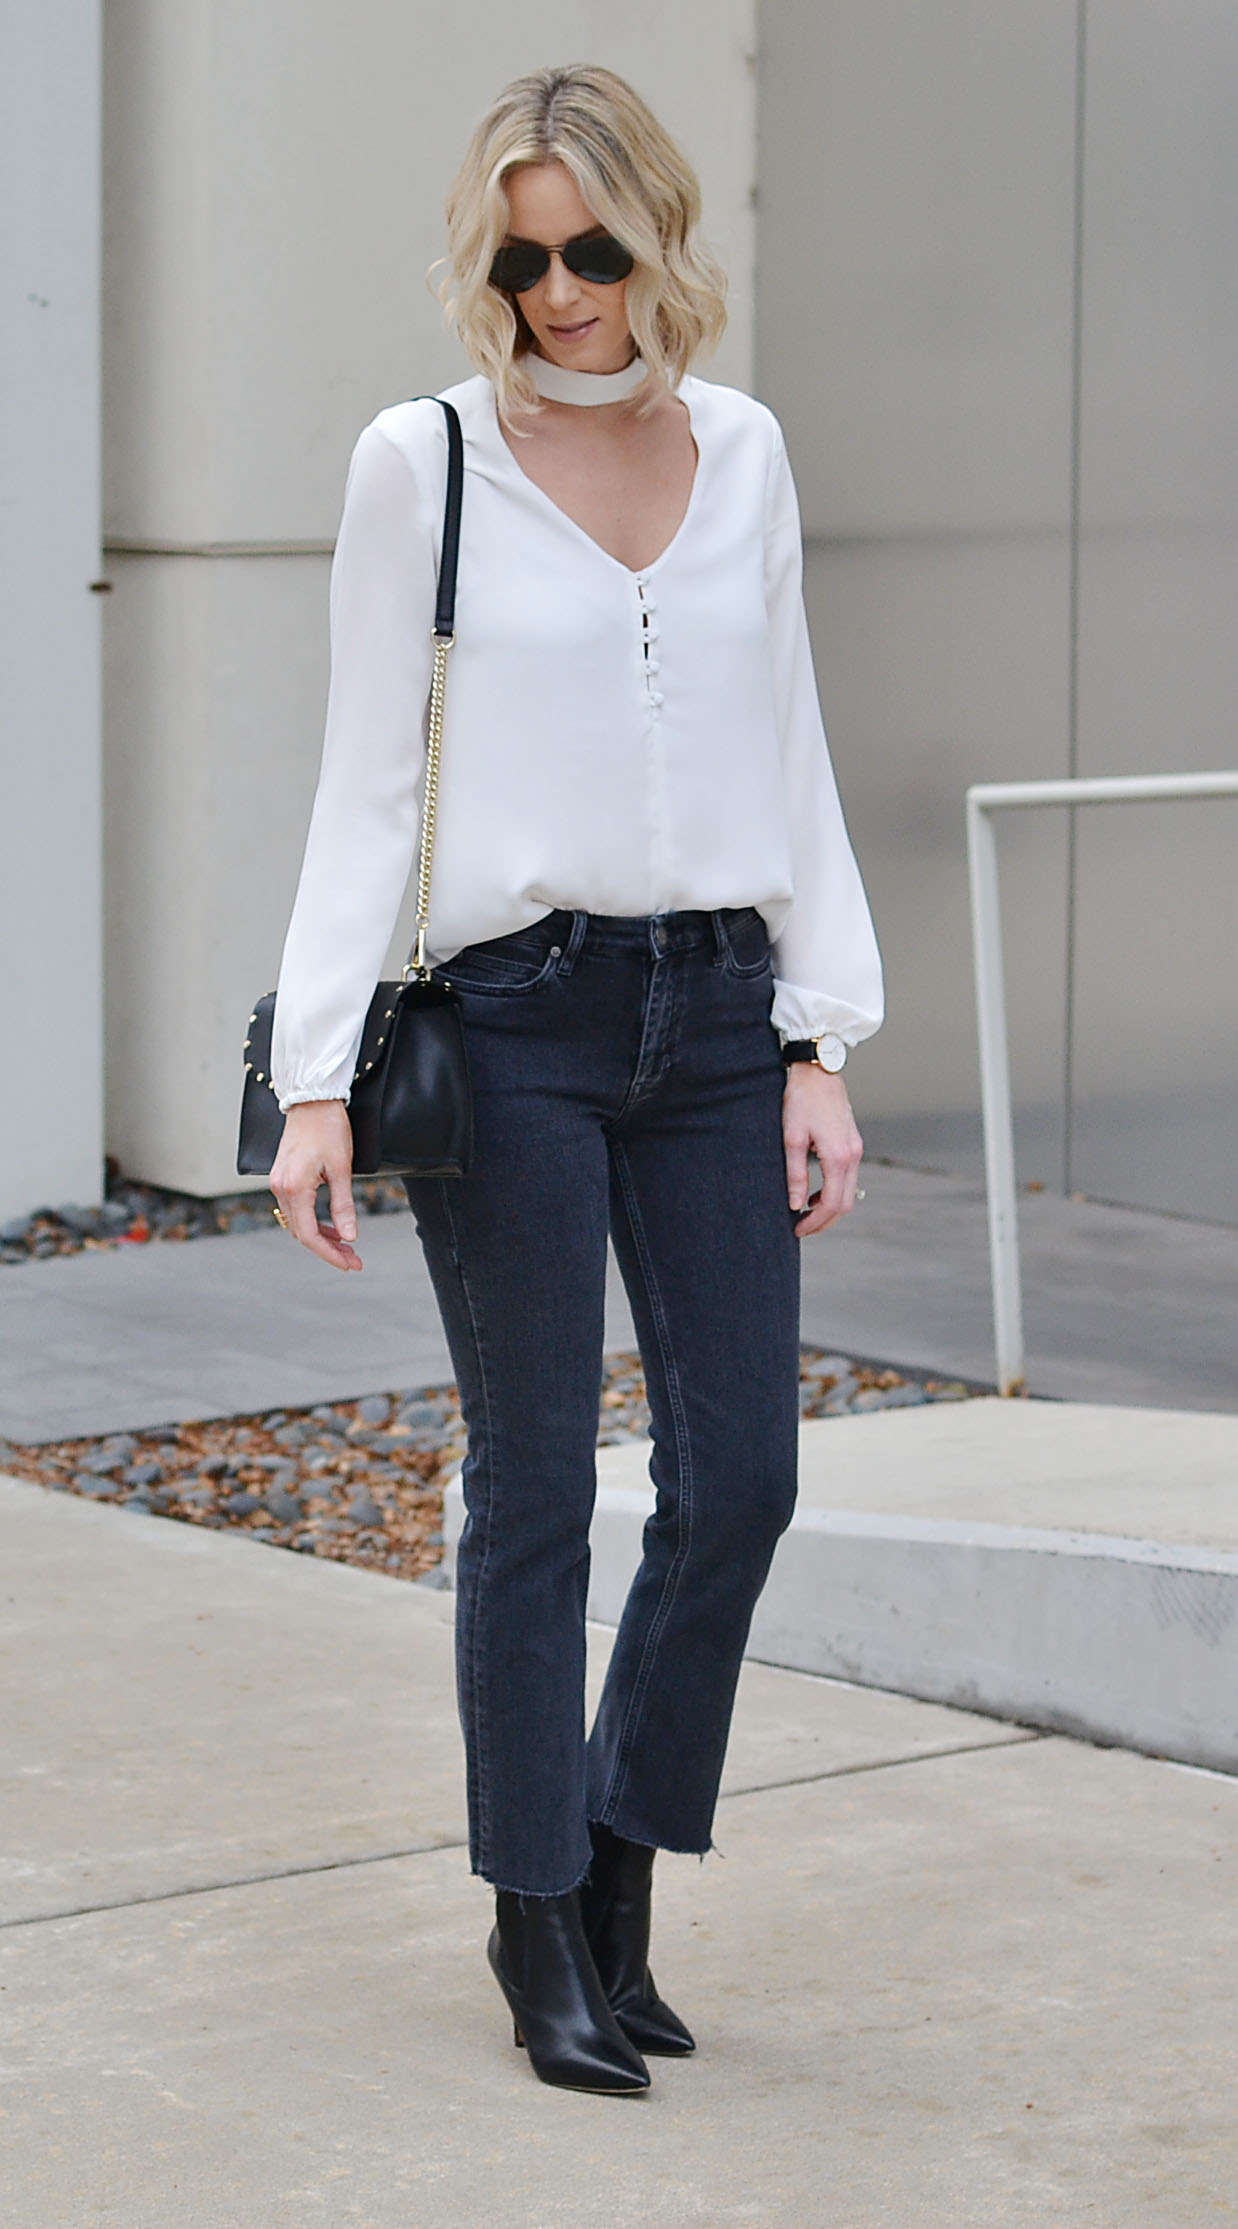 Choker Top with Straight Leg Jeans - Straight A Style